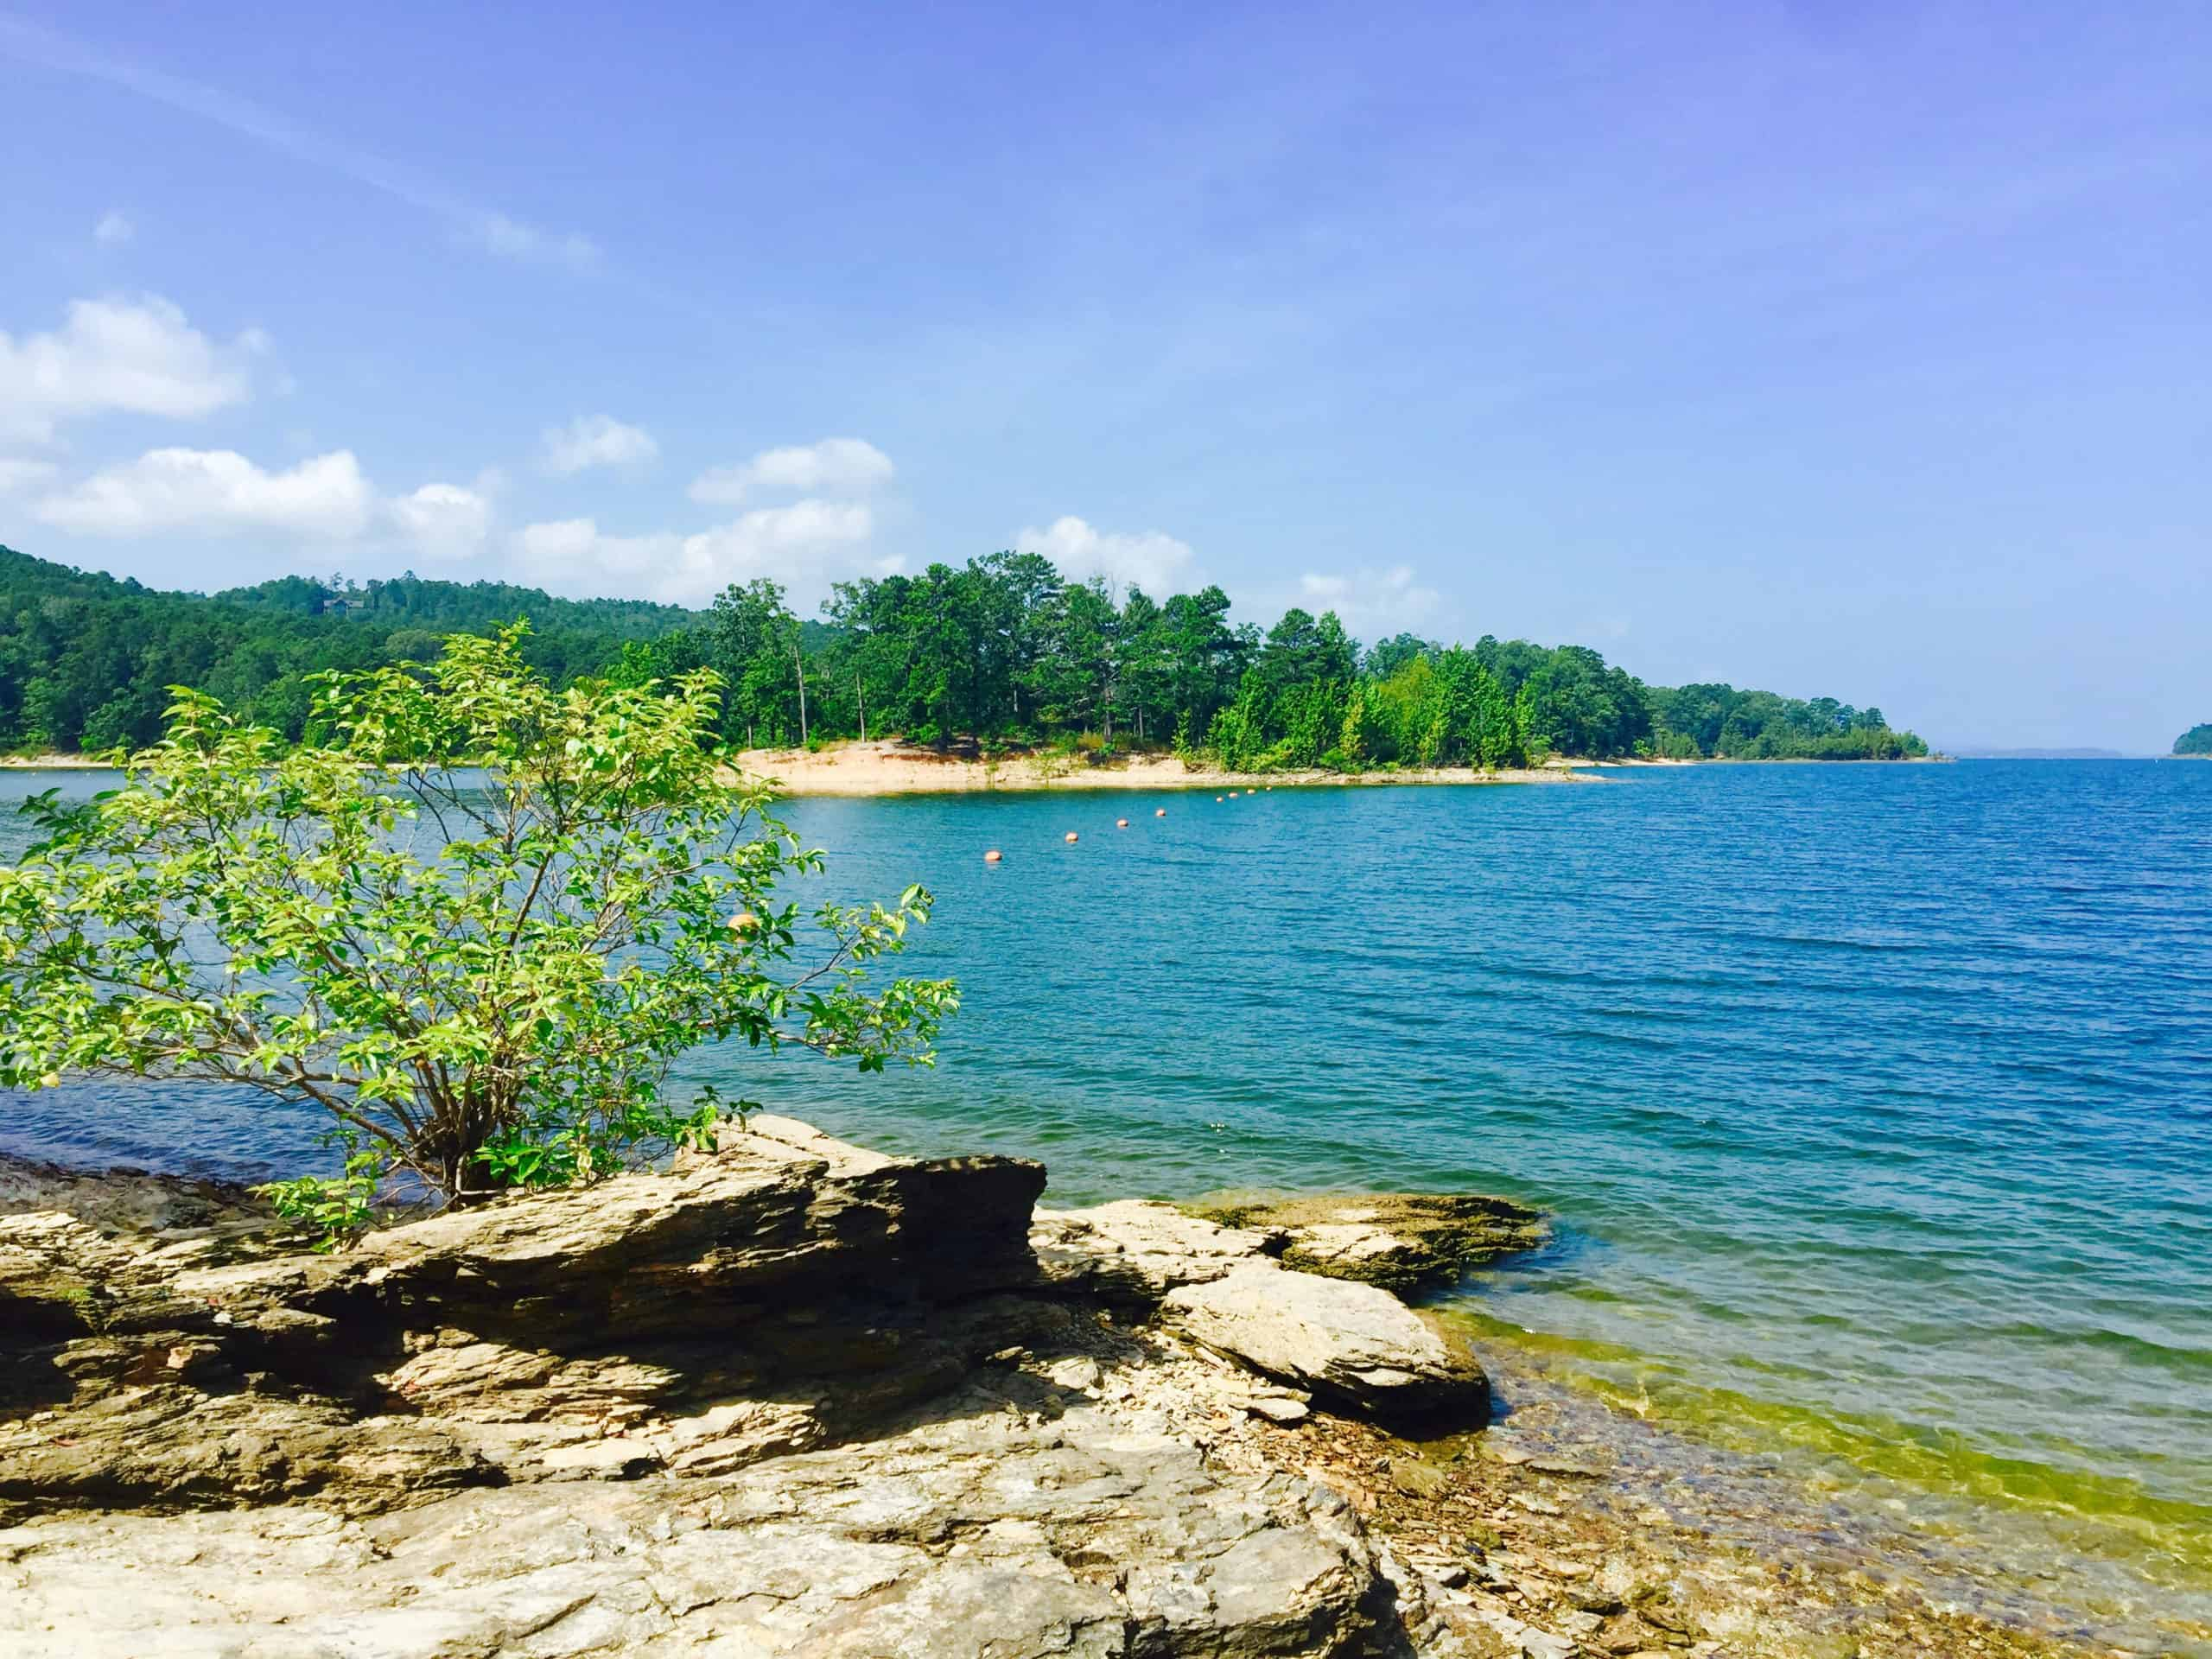 Lake Ouachita National Forest - Camping Sites in Arkansas